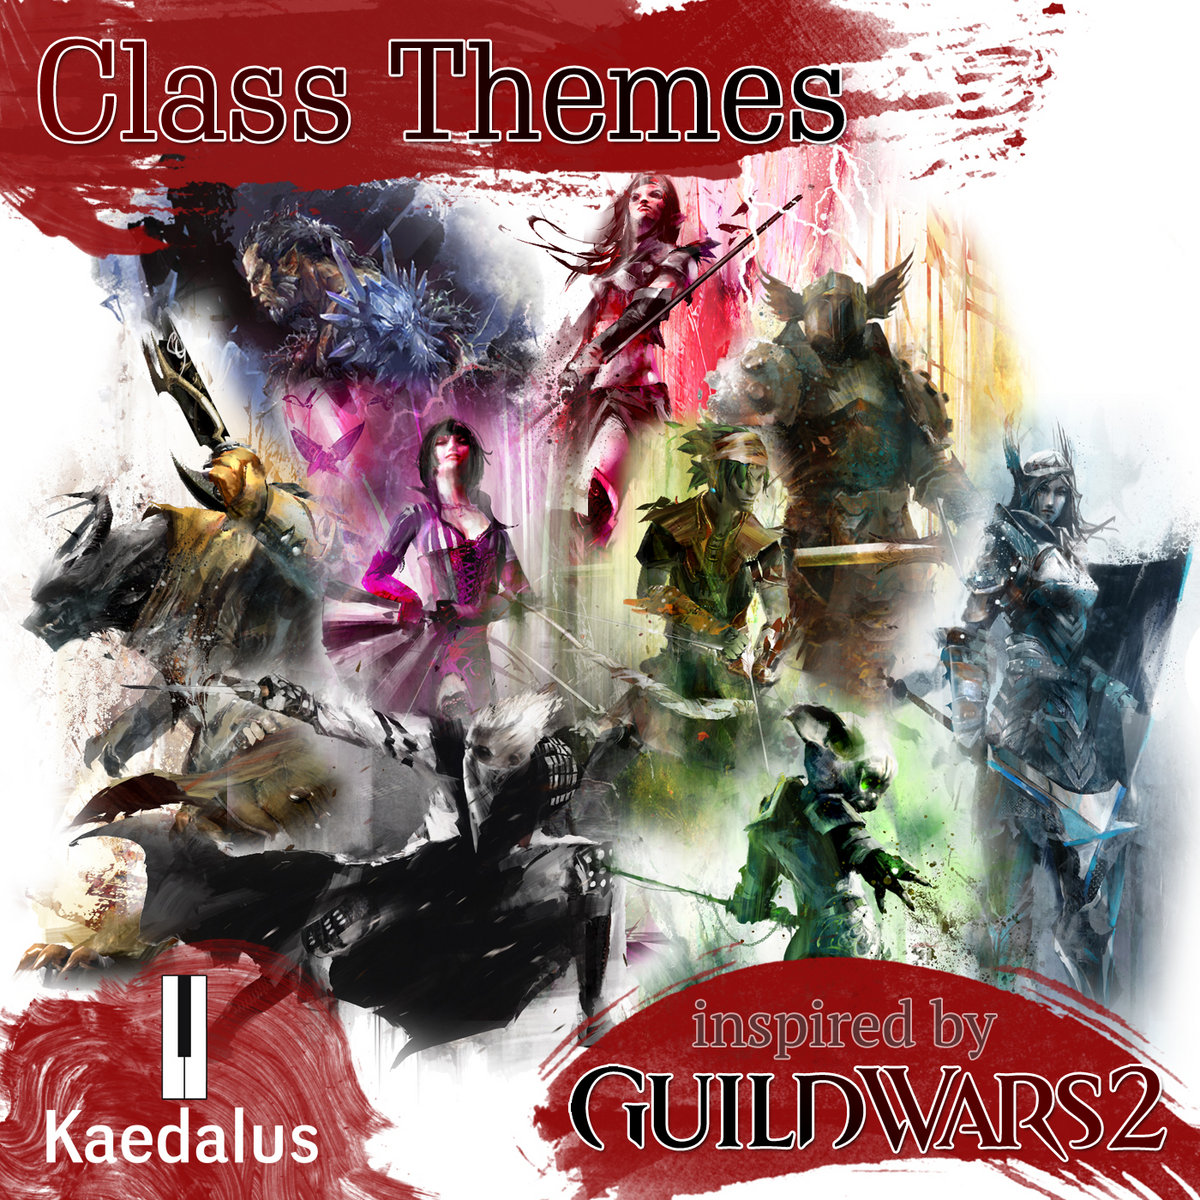 Guild Wars 2: Class Themes (inspired by) | Kaedalus